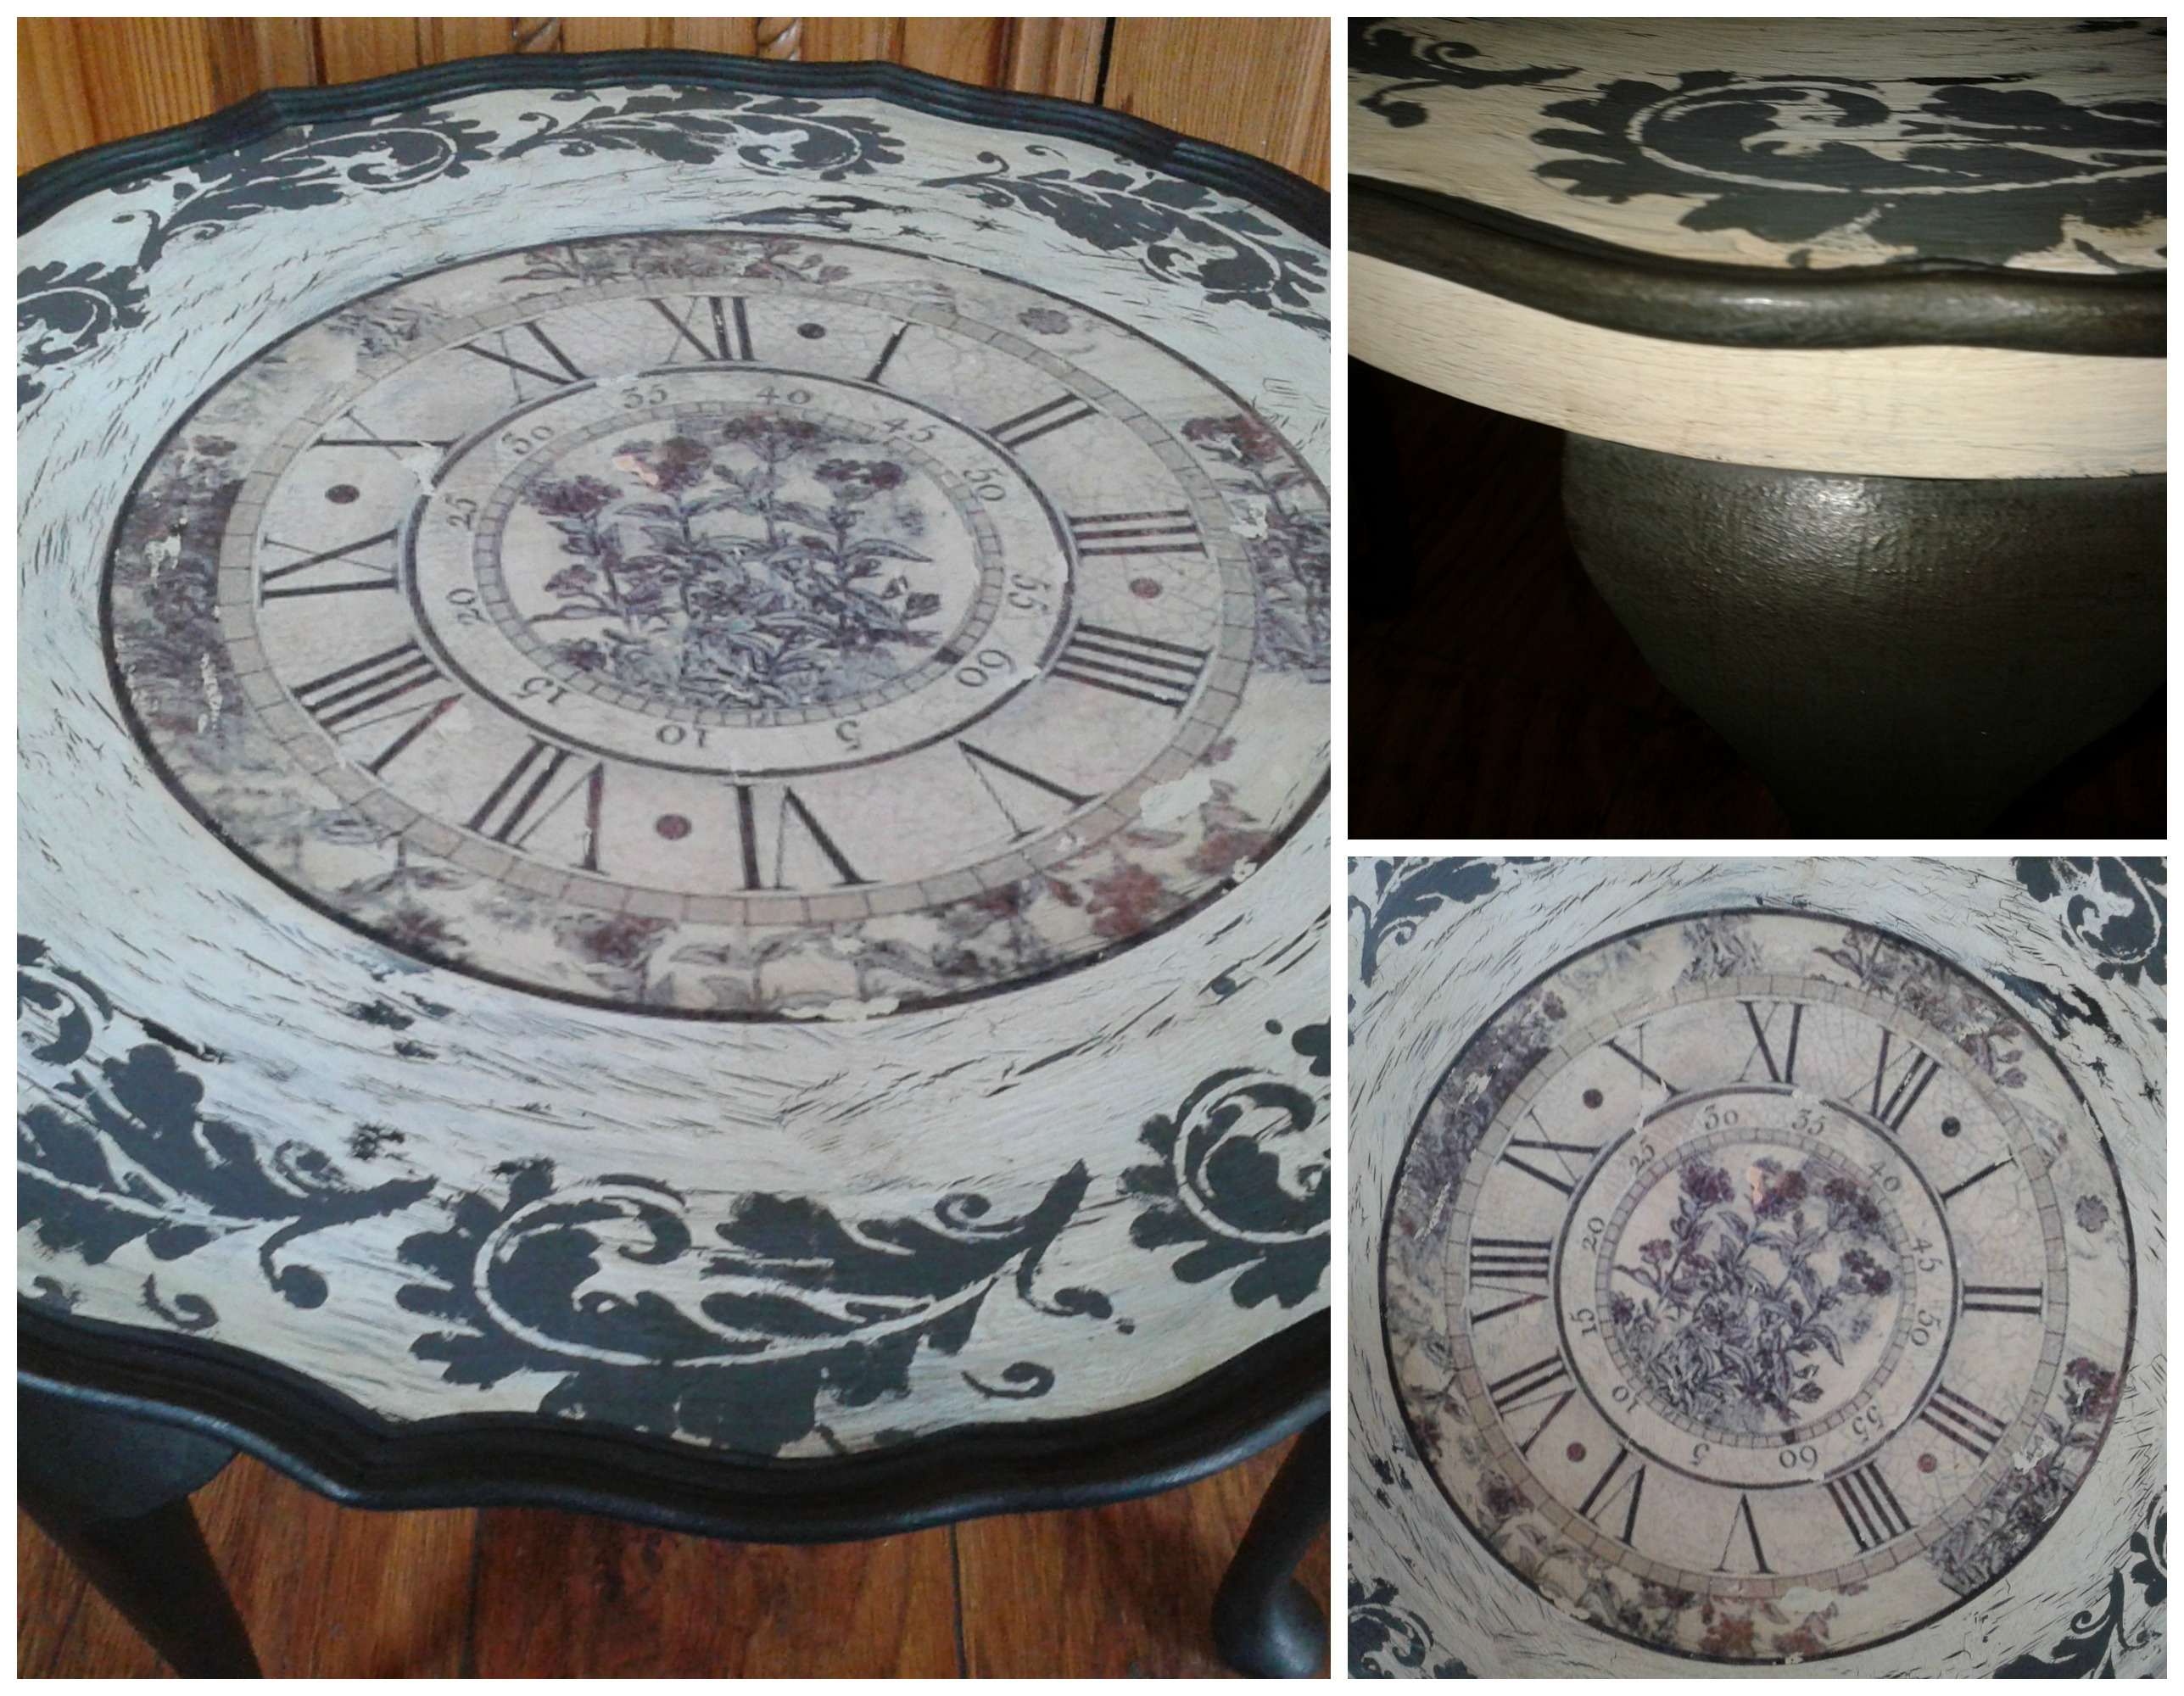 pie crust table with clock transfer detail.jpg